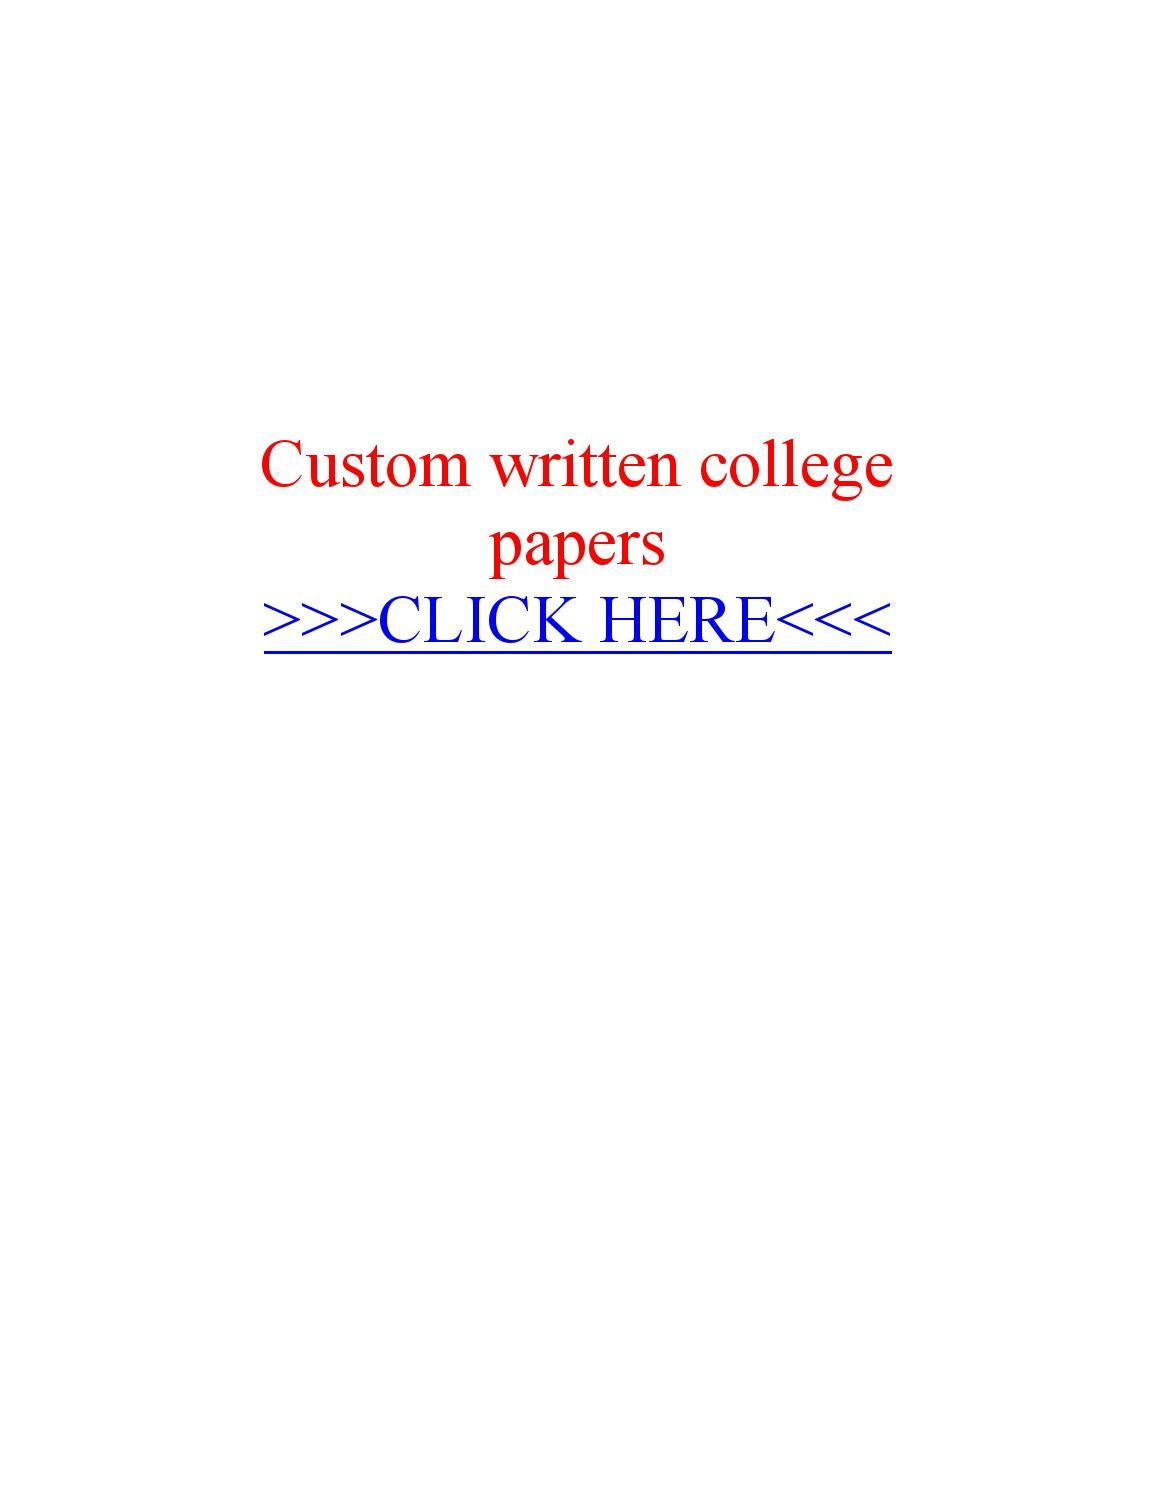 Custom written university papers